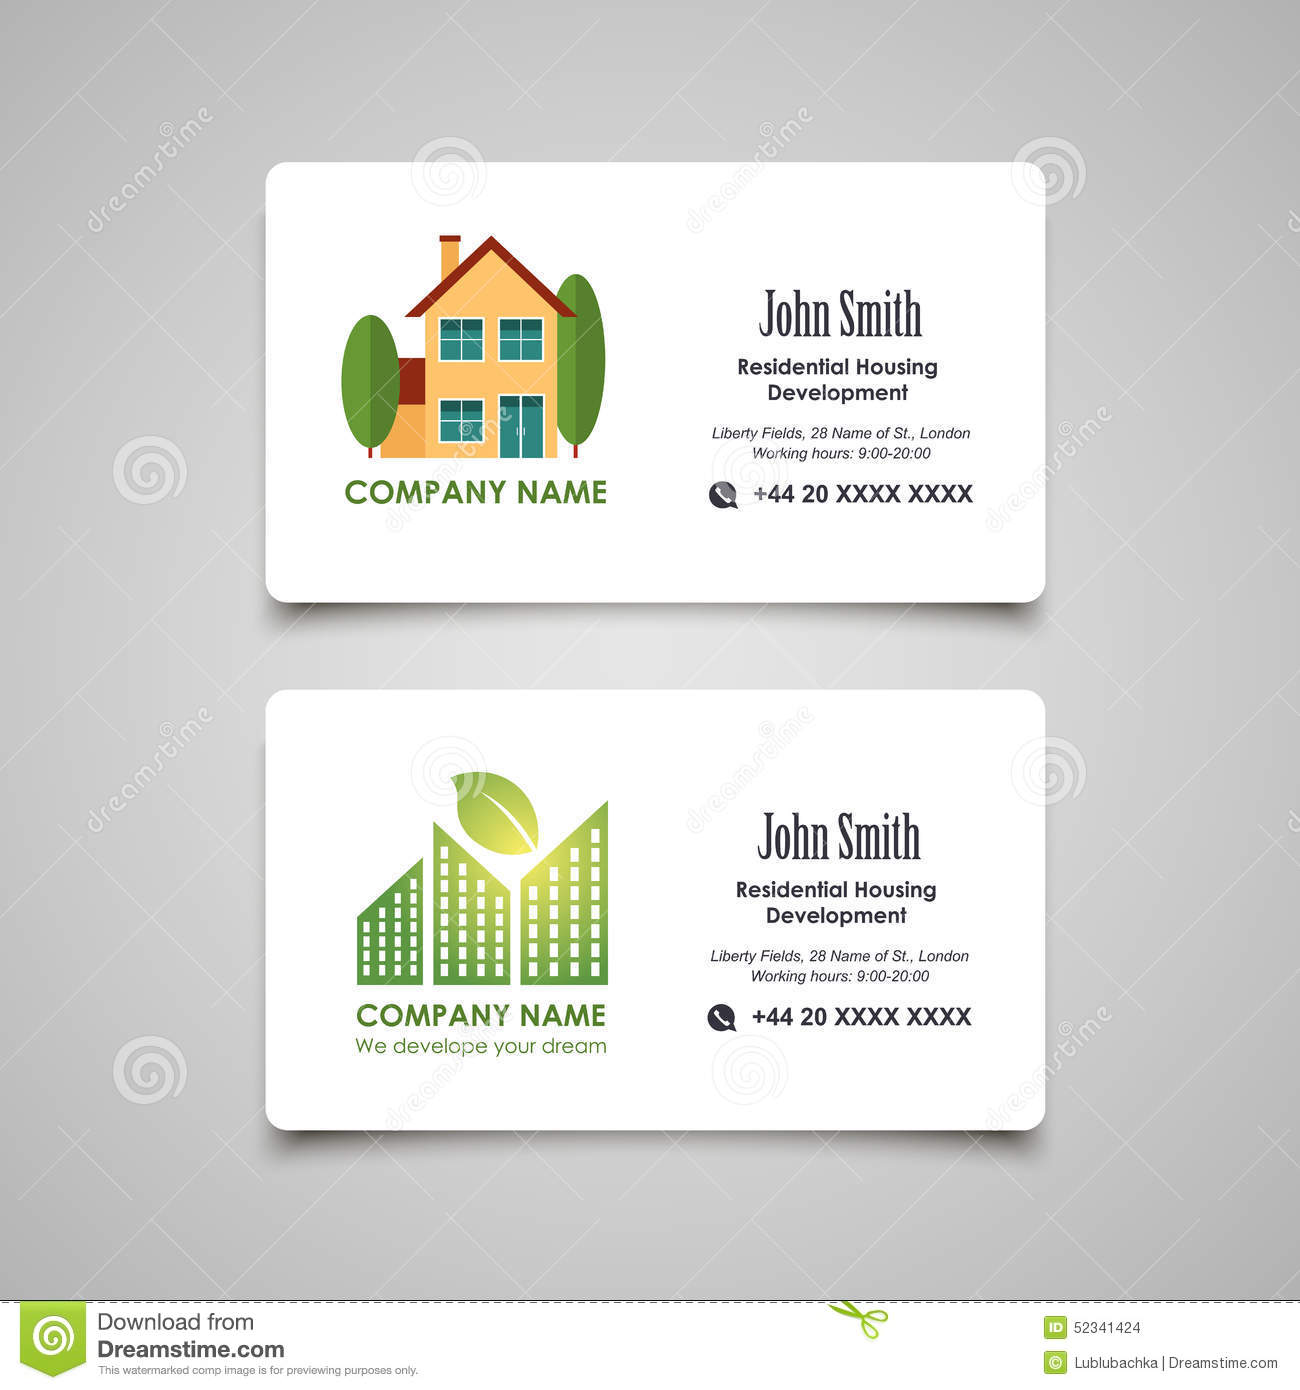 Residential Housing Developing Or Rent Business Card